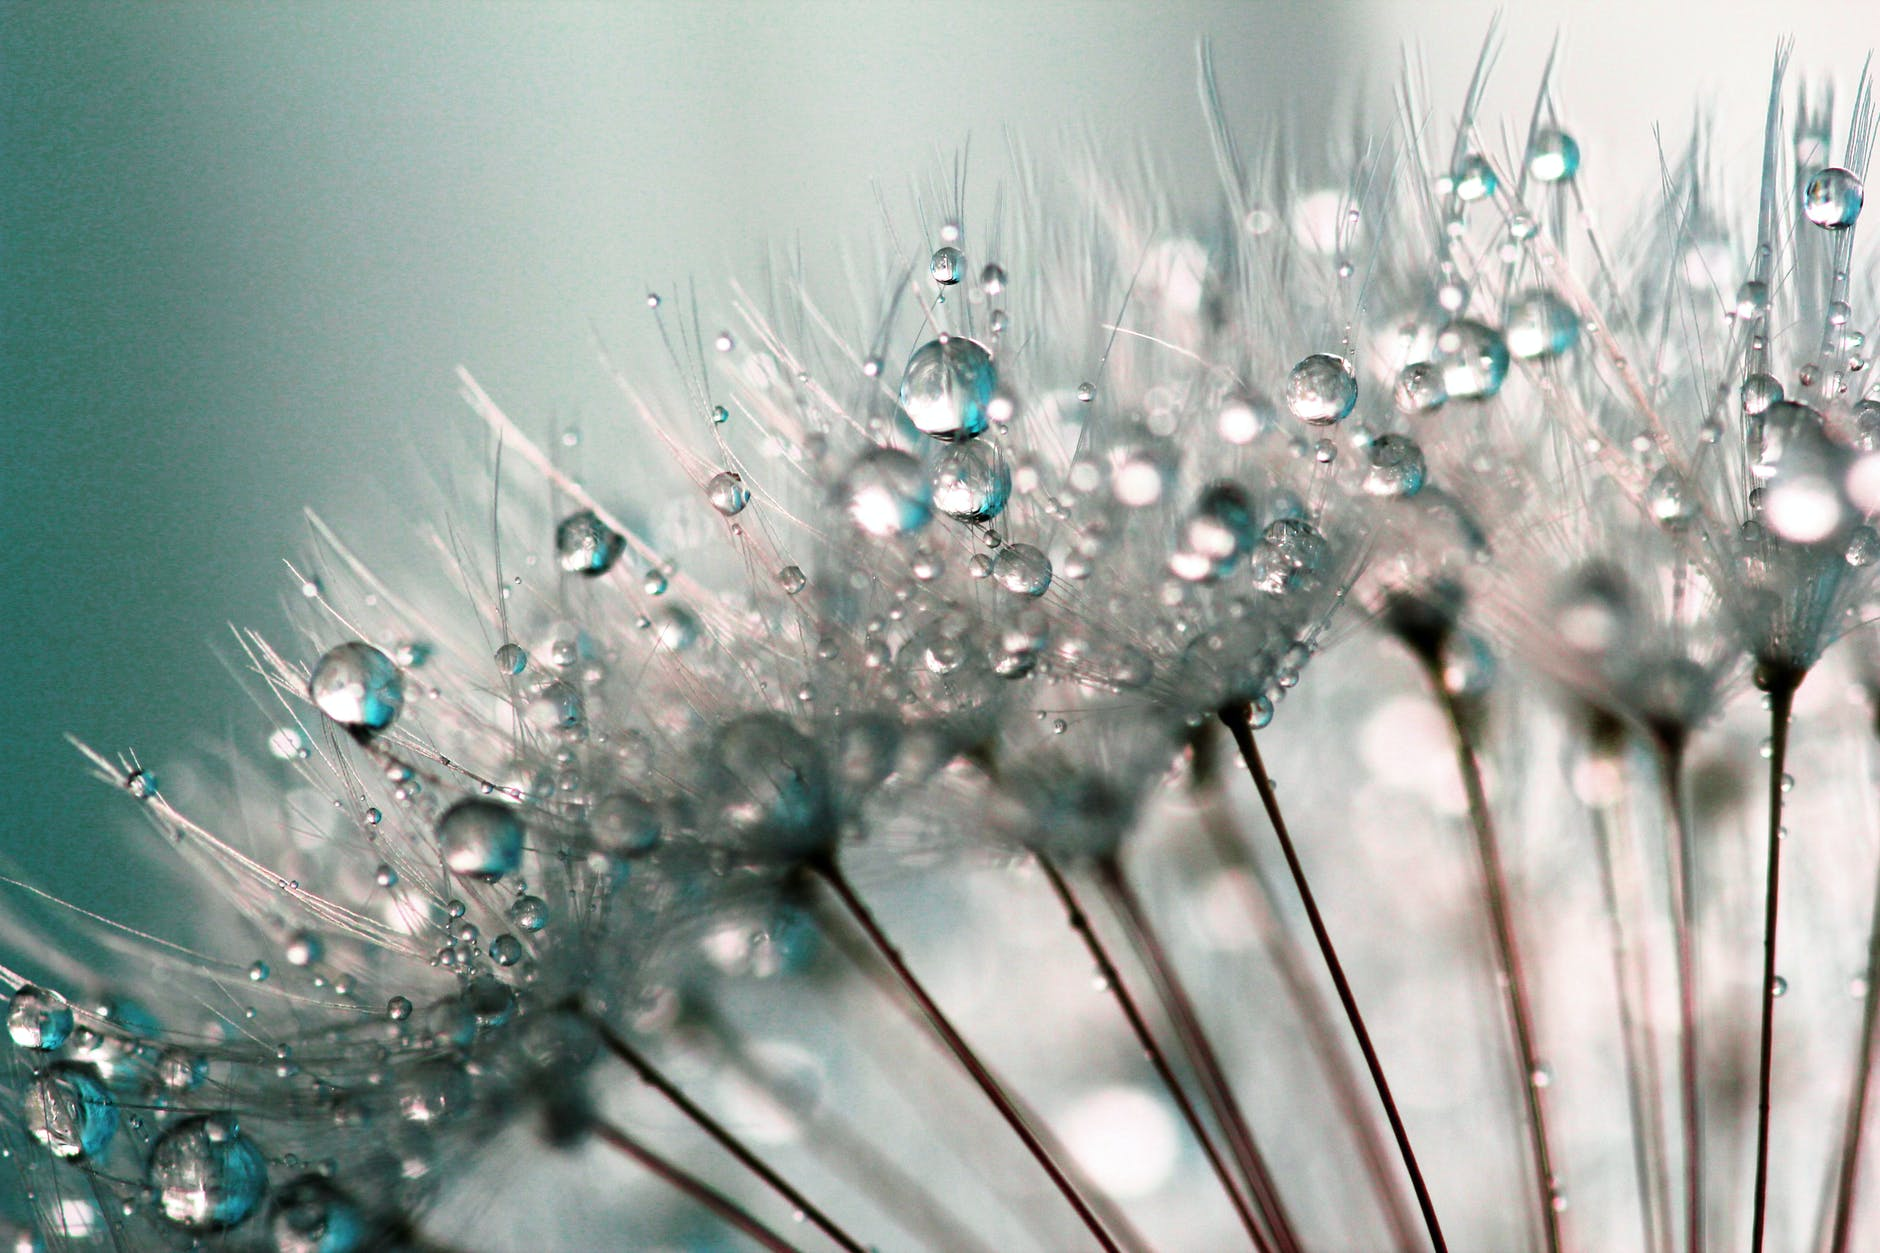 A photo of some dandelions up-close with droplets of morning dew.